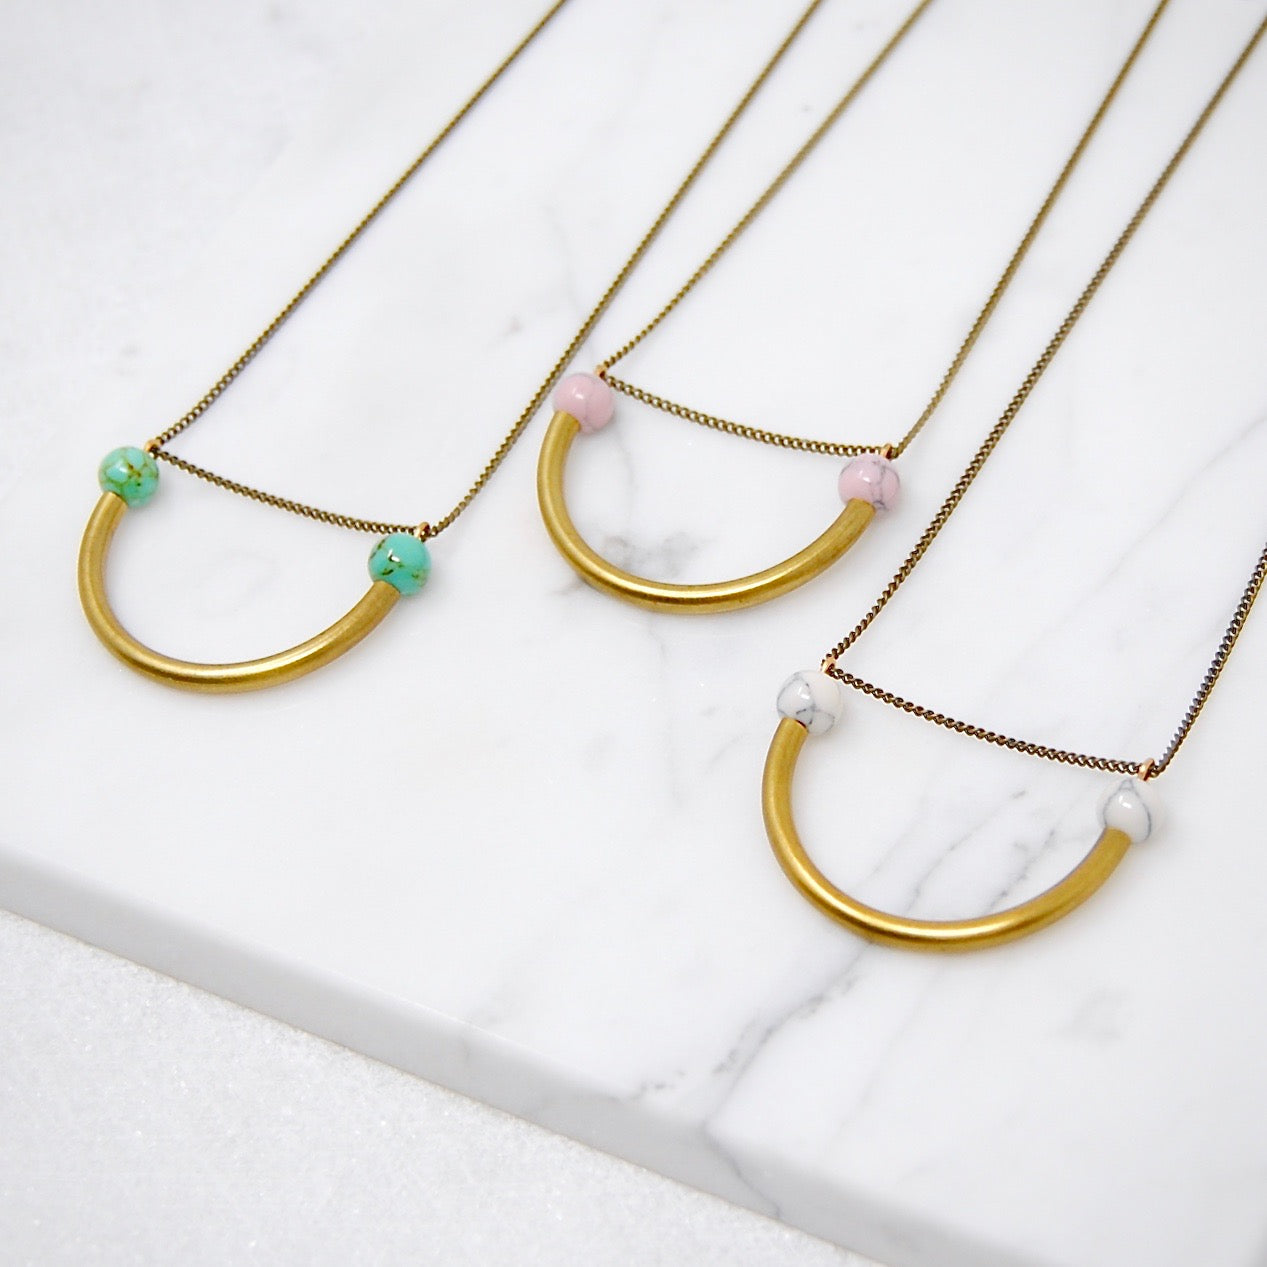 BEADED SEMICIRCLE NECKLACE